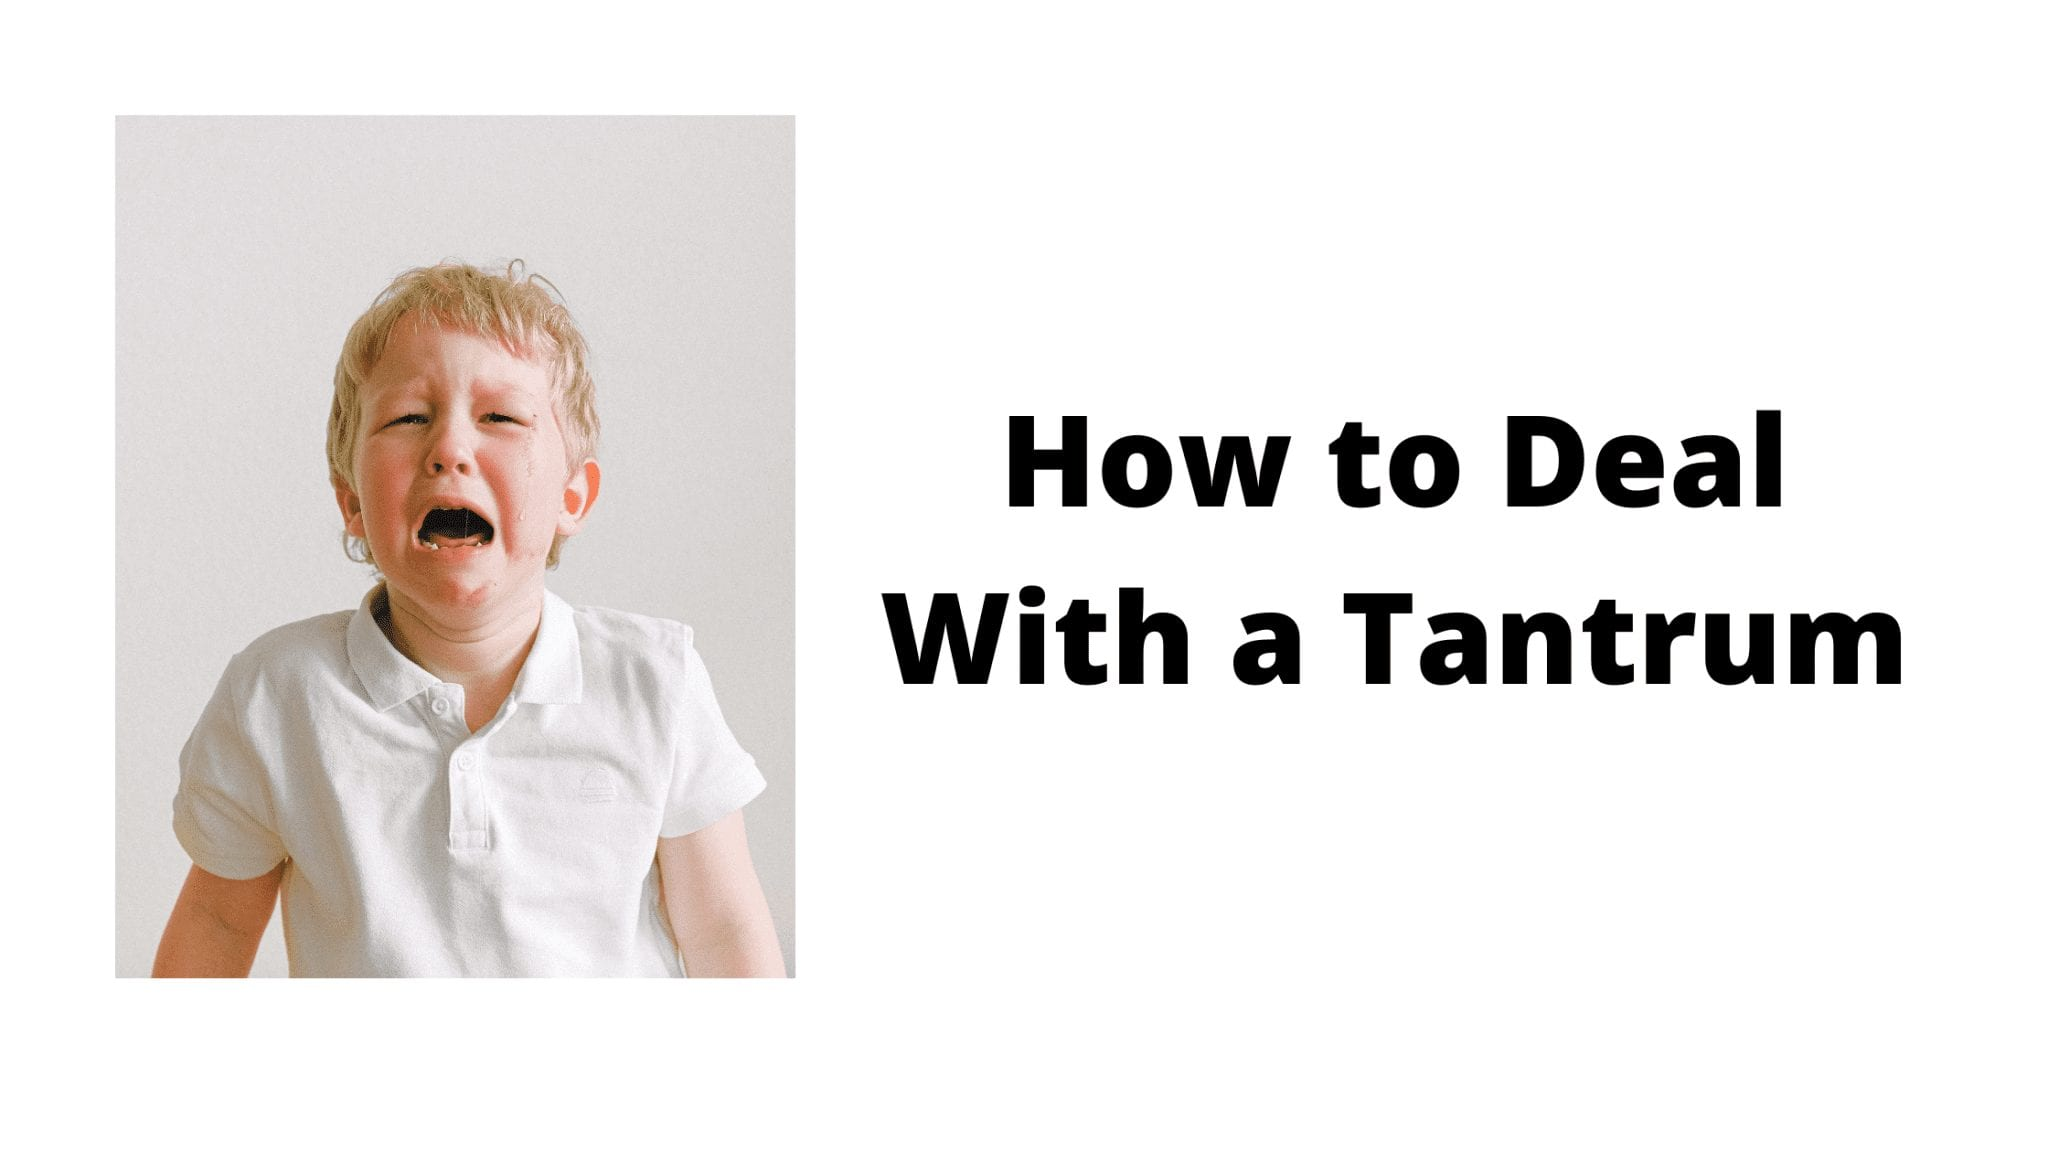 How to Deal With a Tantrum